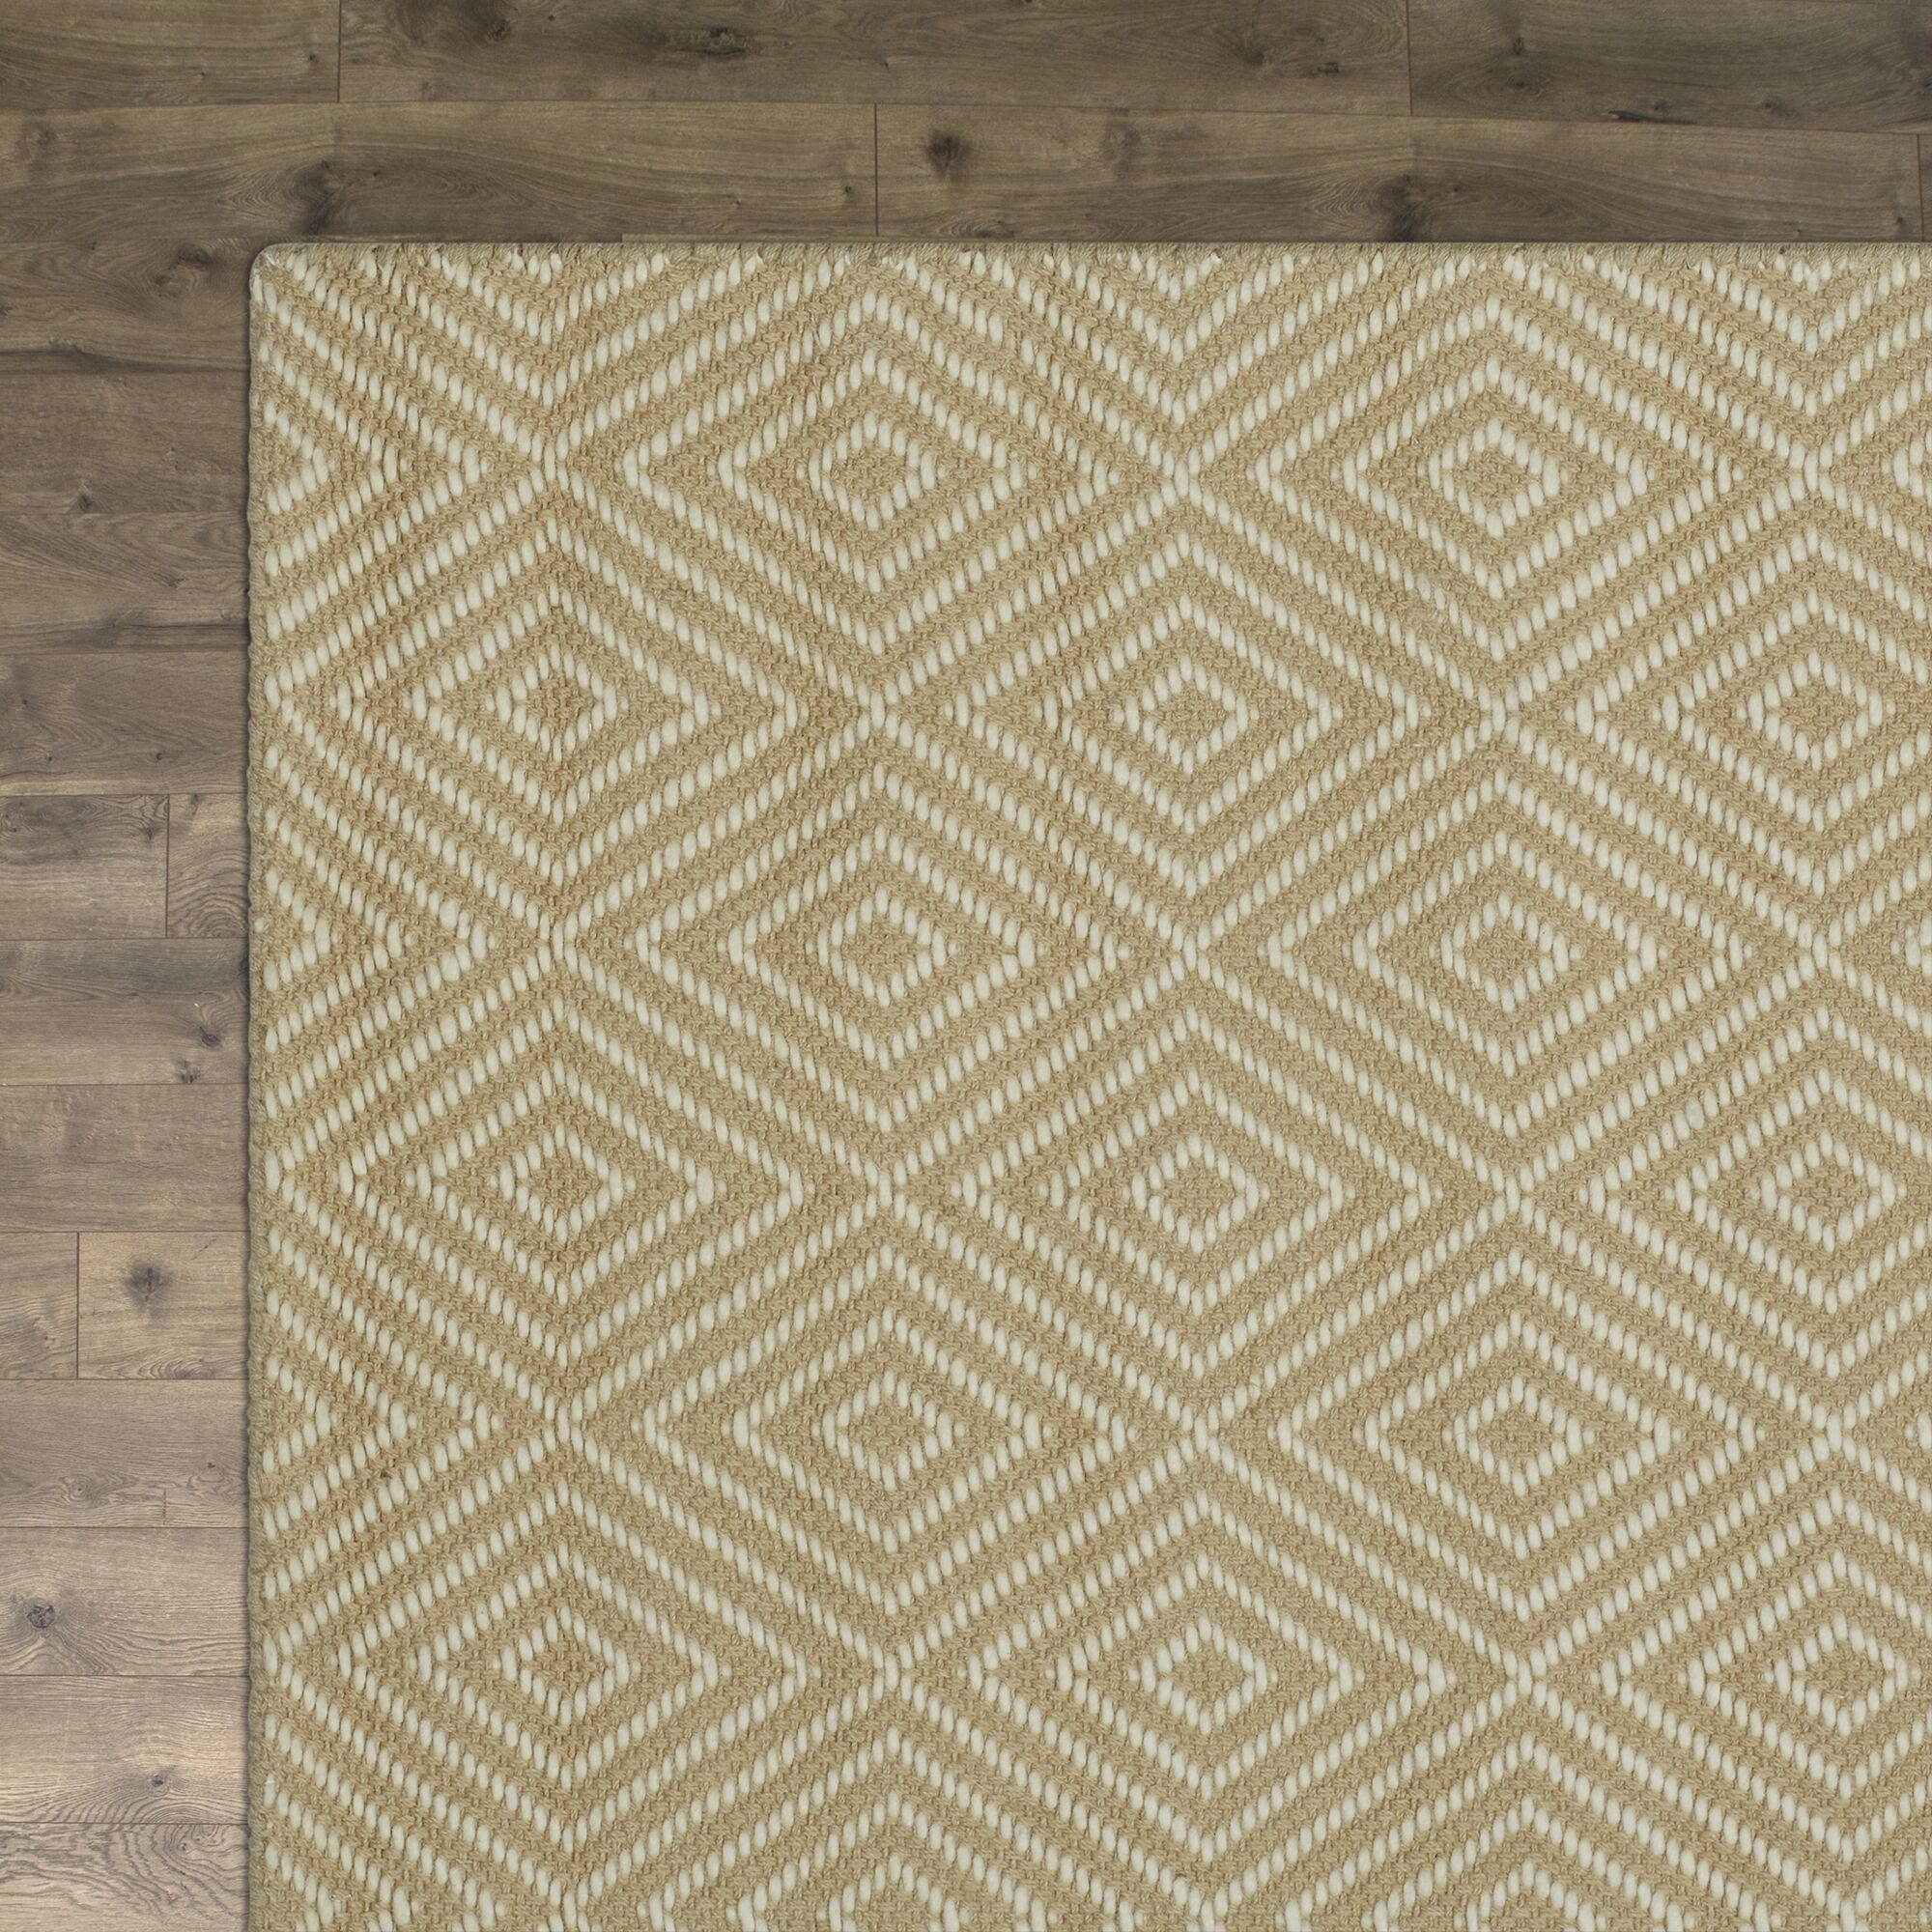 Kris Hand-Woven Taupe Area Rug Rug Size: Rectangle 4' x 6'